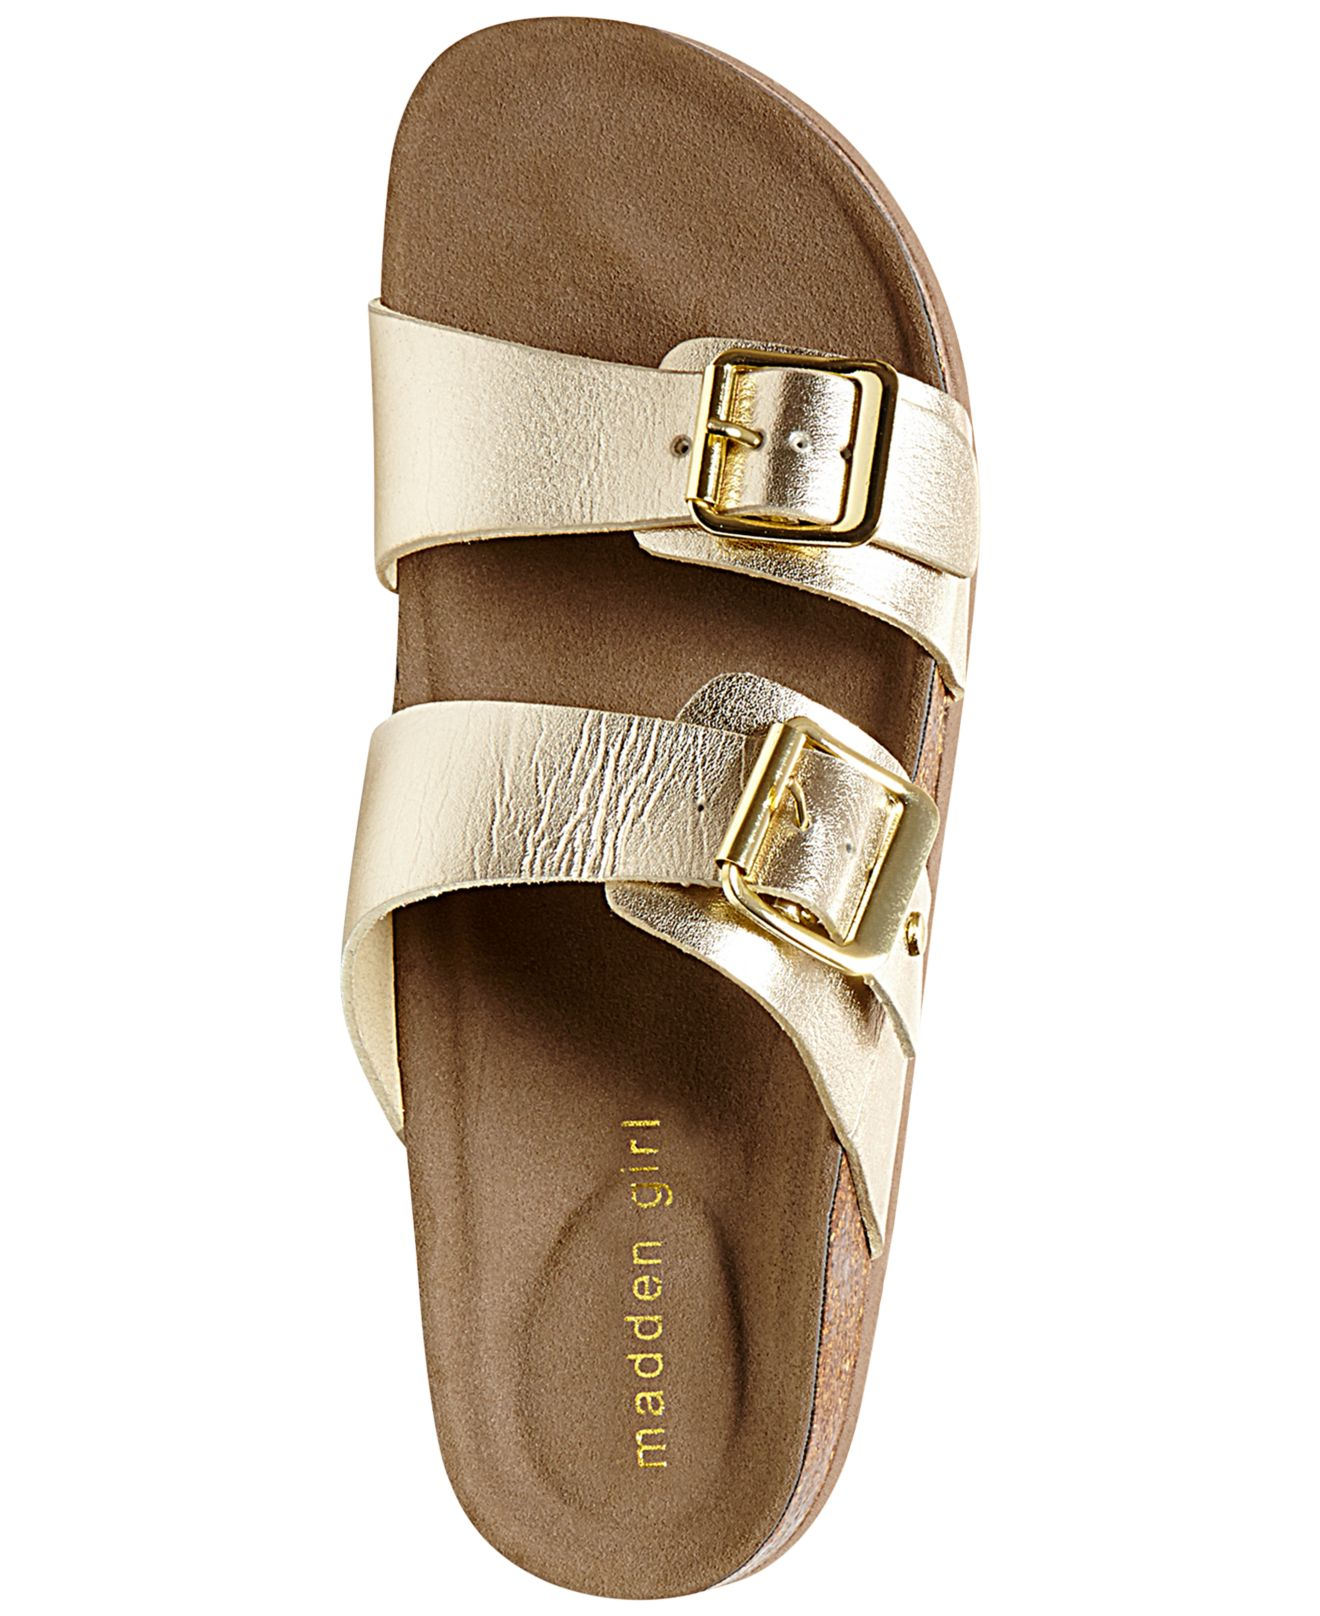 336146be8f8f Lyst - Madden Girl Brando Footbed Sandals in Metallic